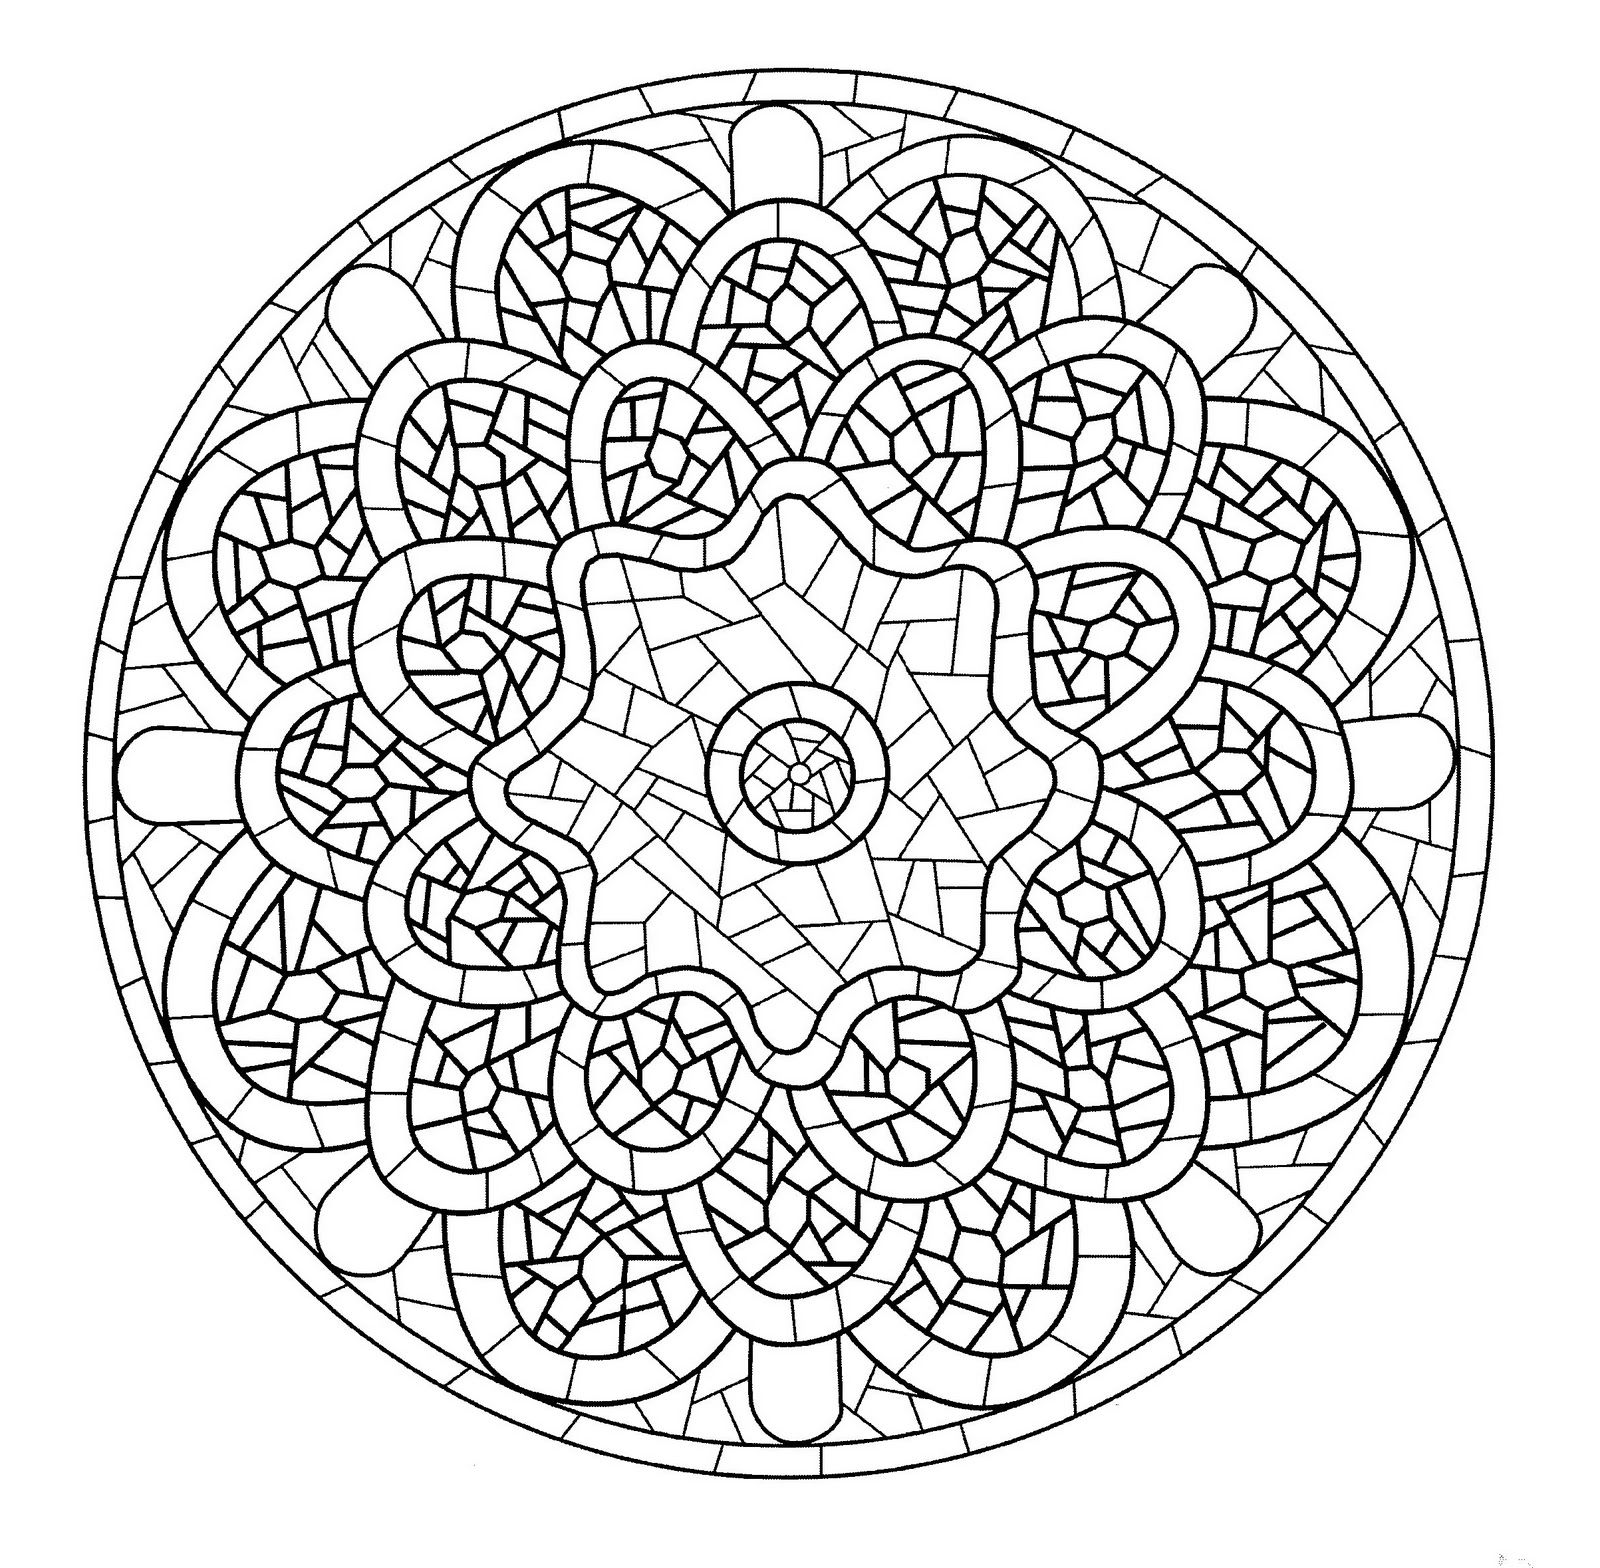 Uncategorized Free Mandalas in these pages you will find our mandalas coloring made to free page color zen relax free